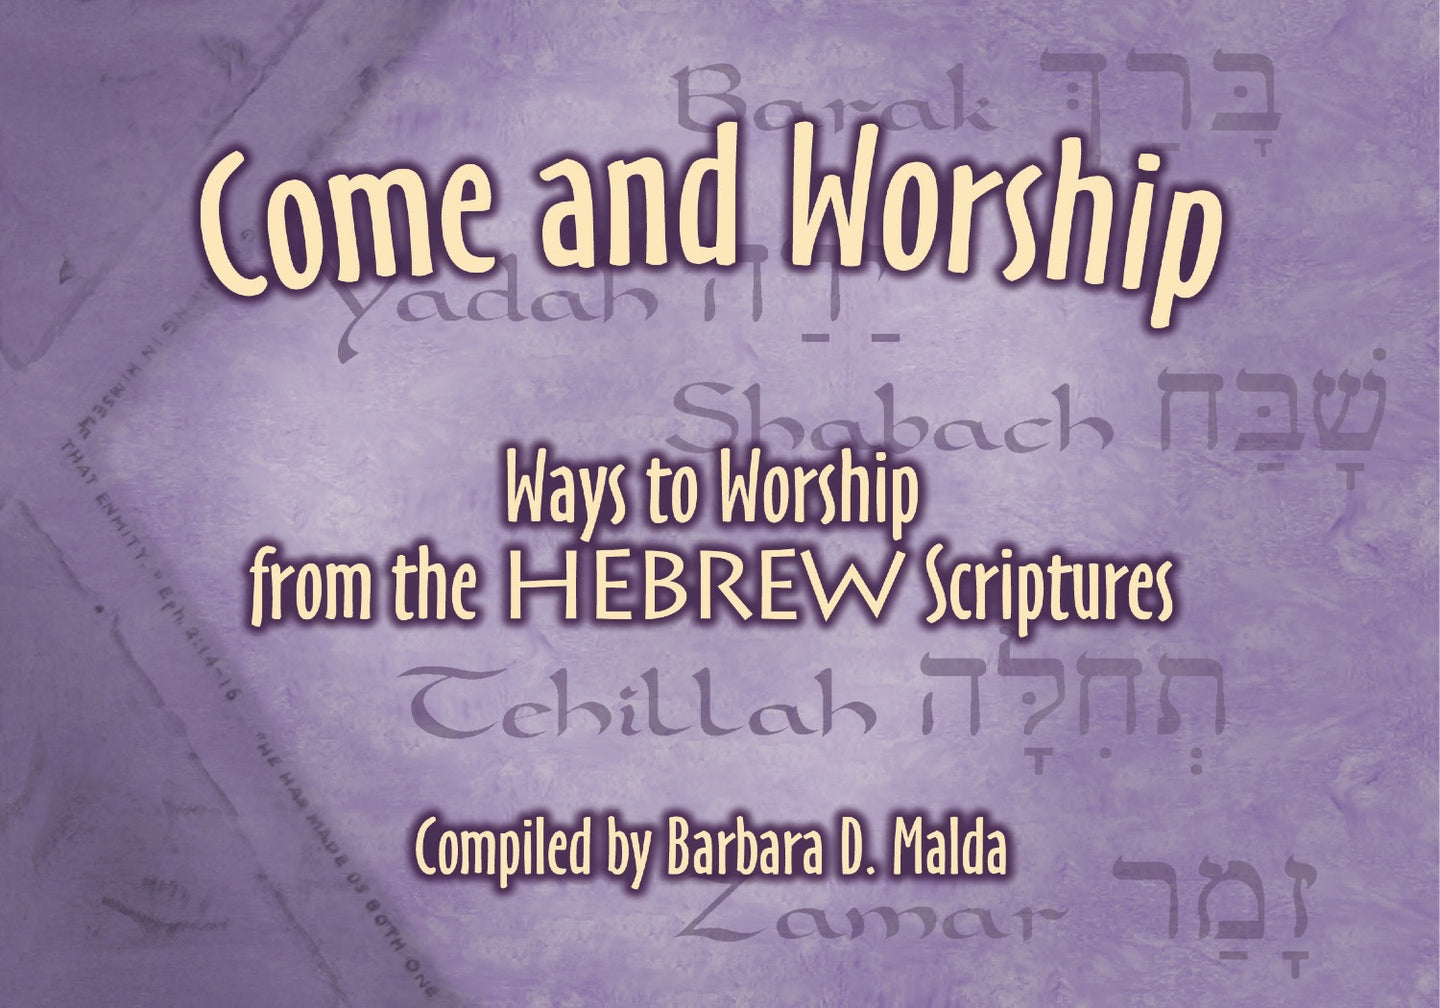 Come and Worship: Ways to Worship from the Hebrew Scriptures by Barbara Malda